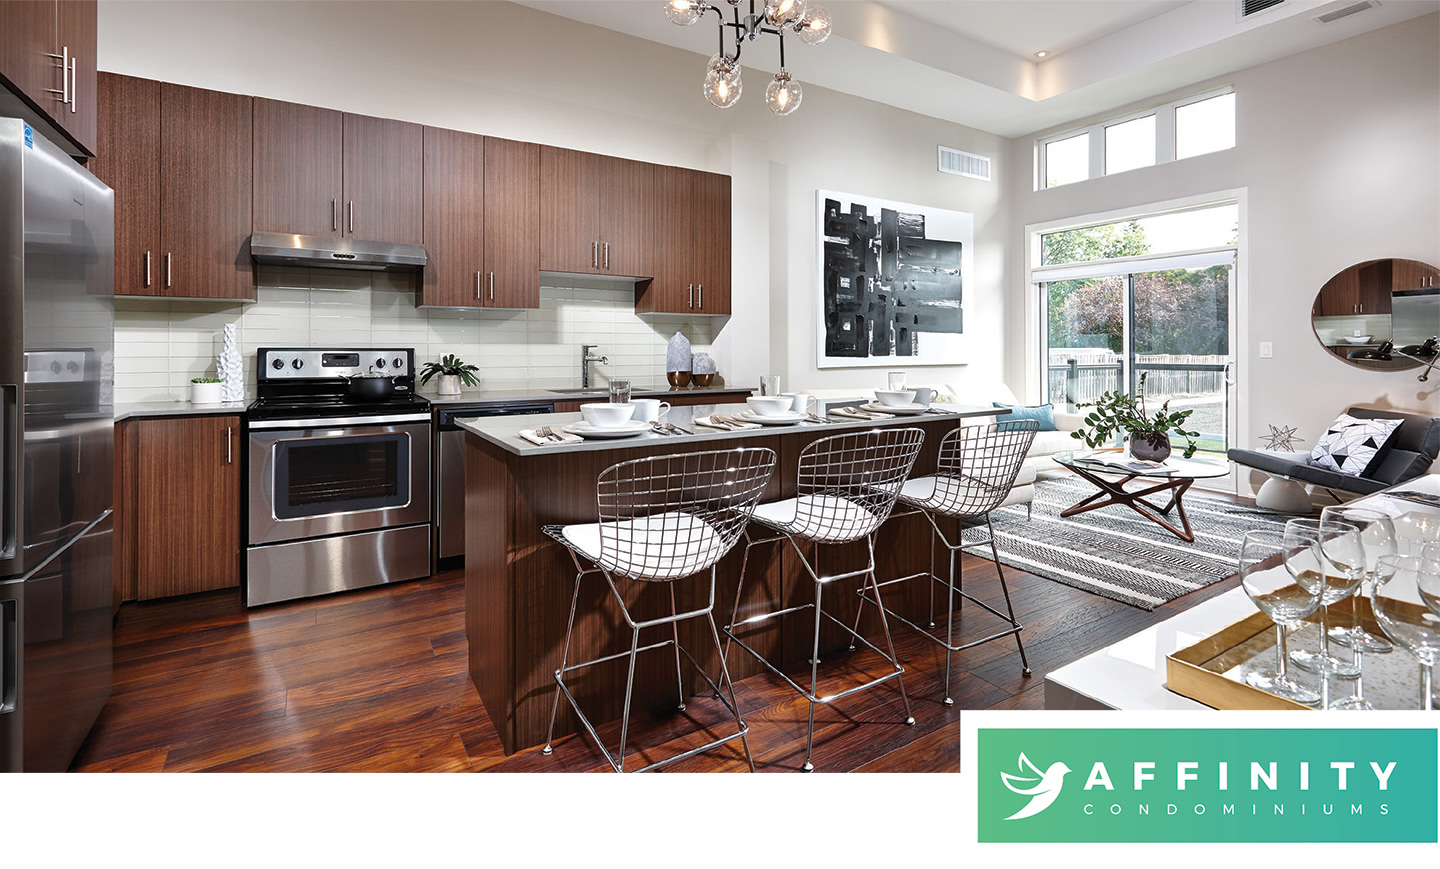 Pre-Construction Pricing at Affinity Condos in Aldershot